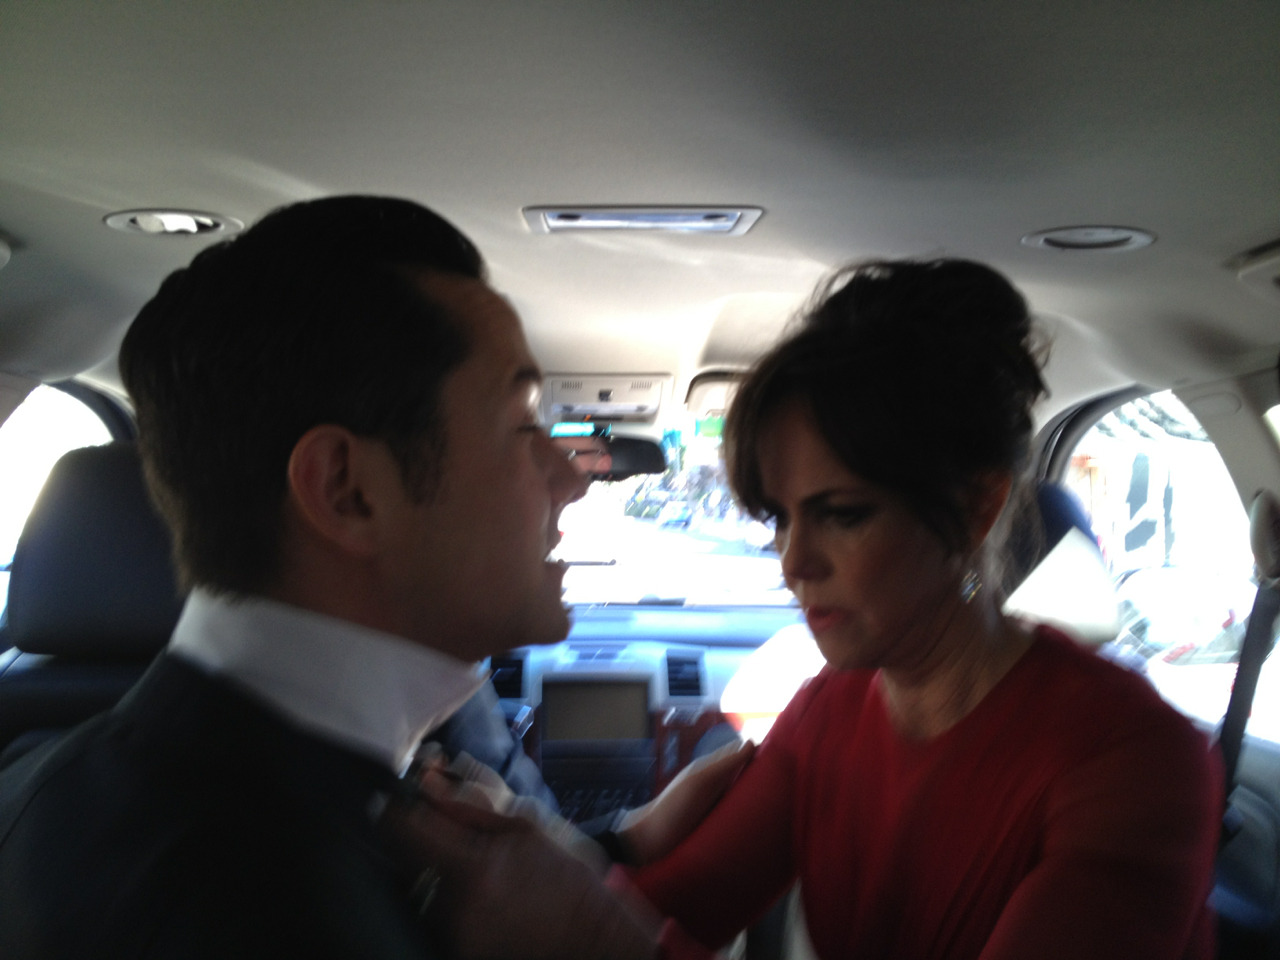 huffposttv:  hitrecordjoe:  Sally did indeed know how to tie a bow tie! I thought she would. #Oscars  If Sally Field tied my bow tie I think I would pass out.